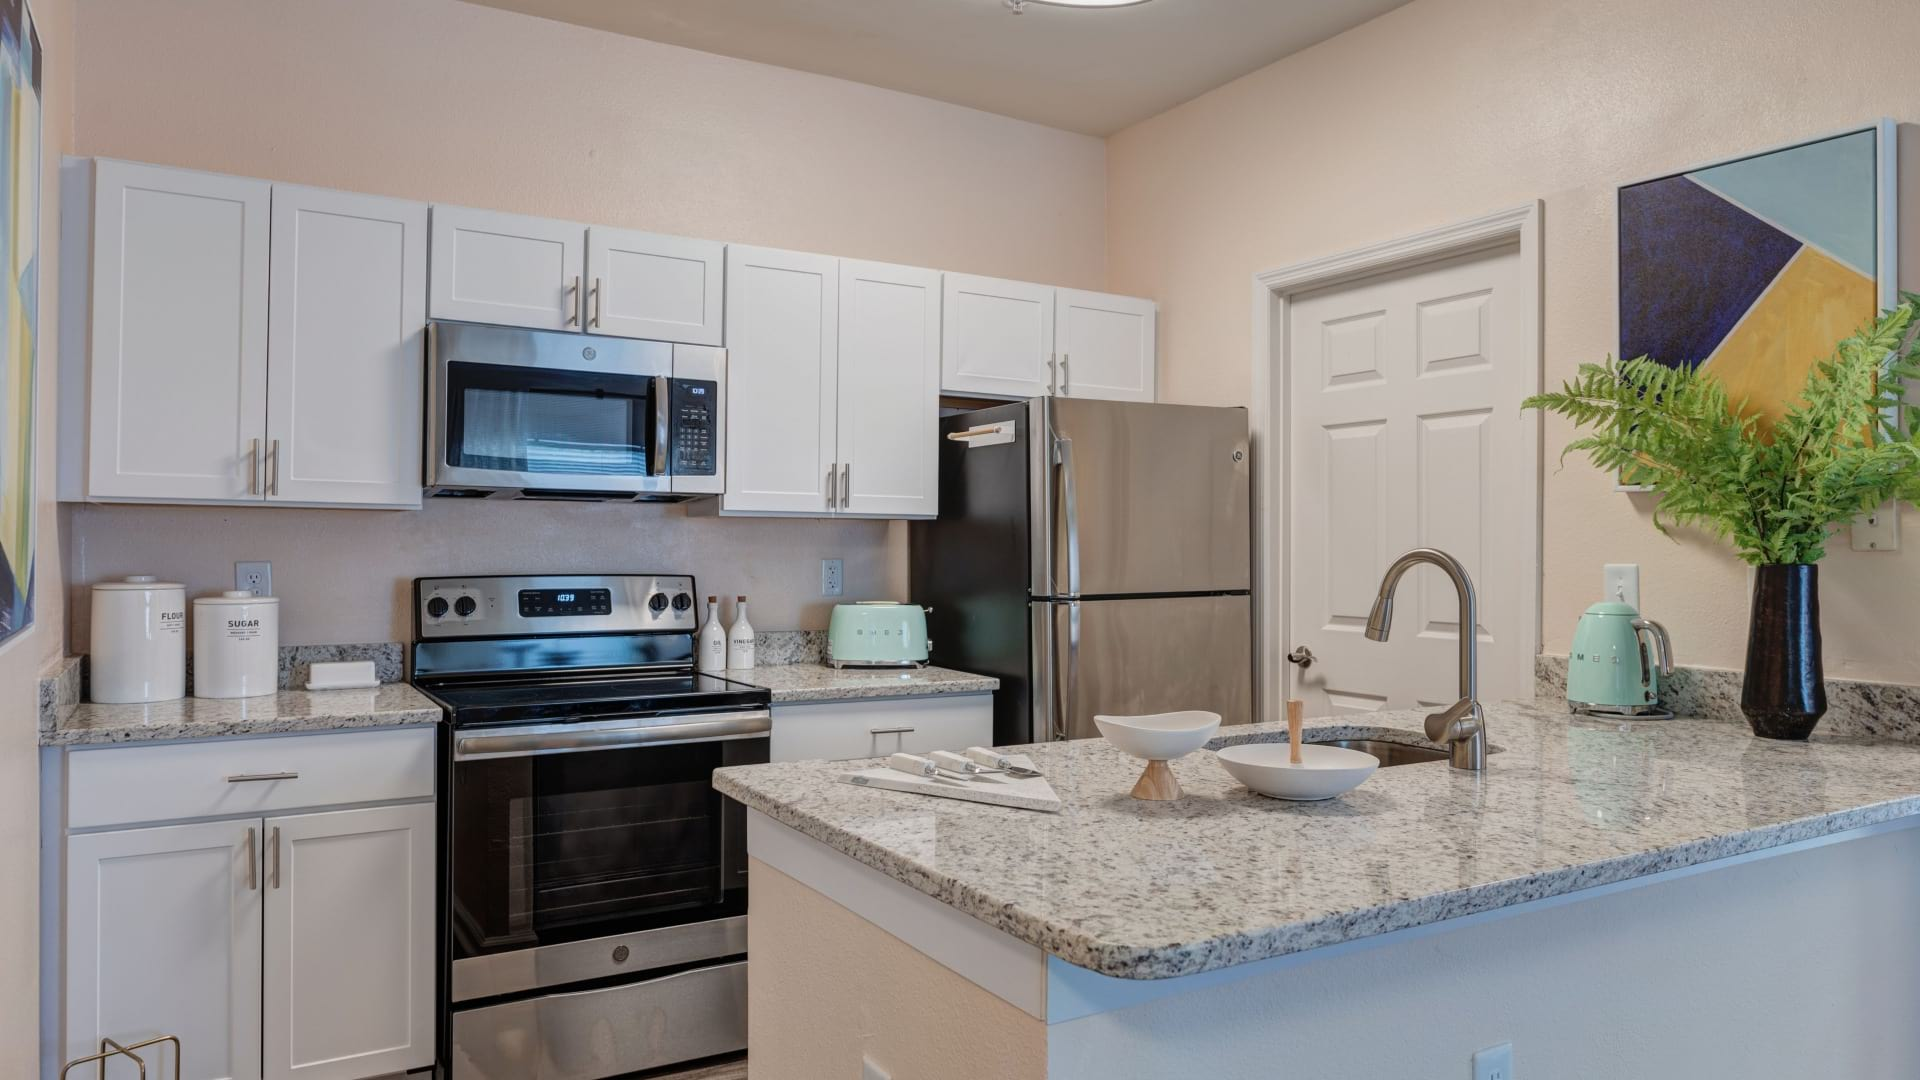 Upscale Apartment Kitchen With Granite Countertops At Our Apartments For Rent In Cary, NC